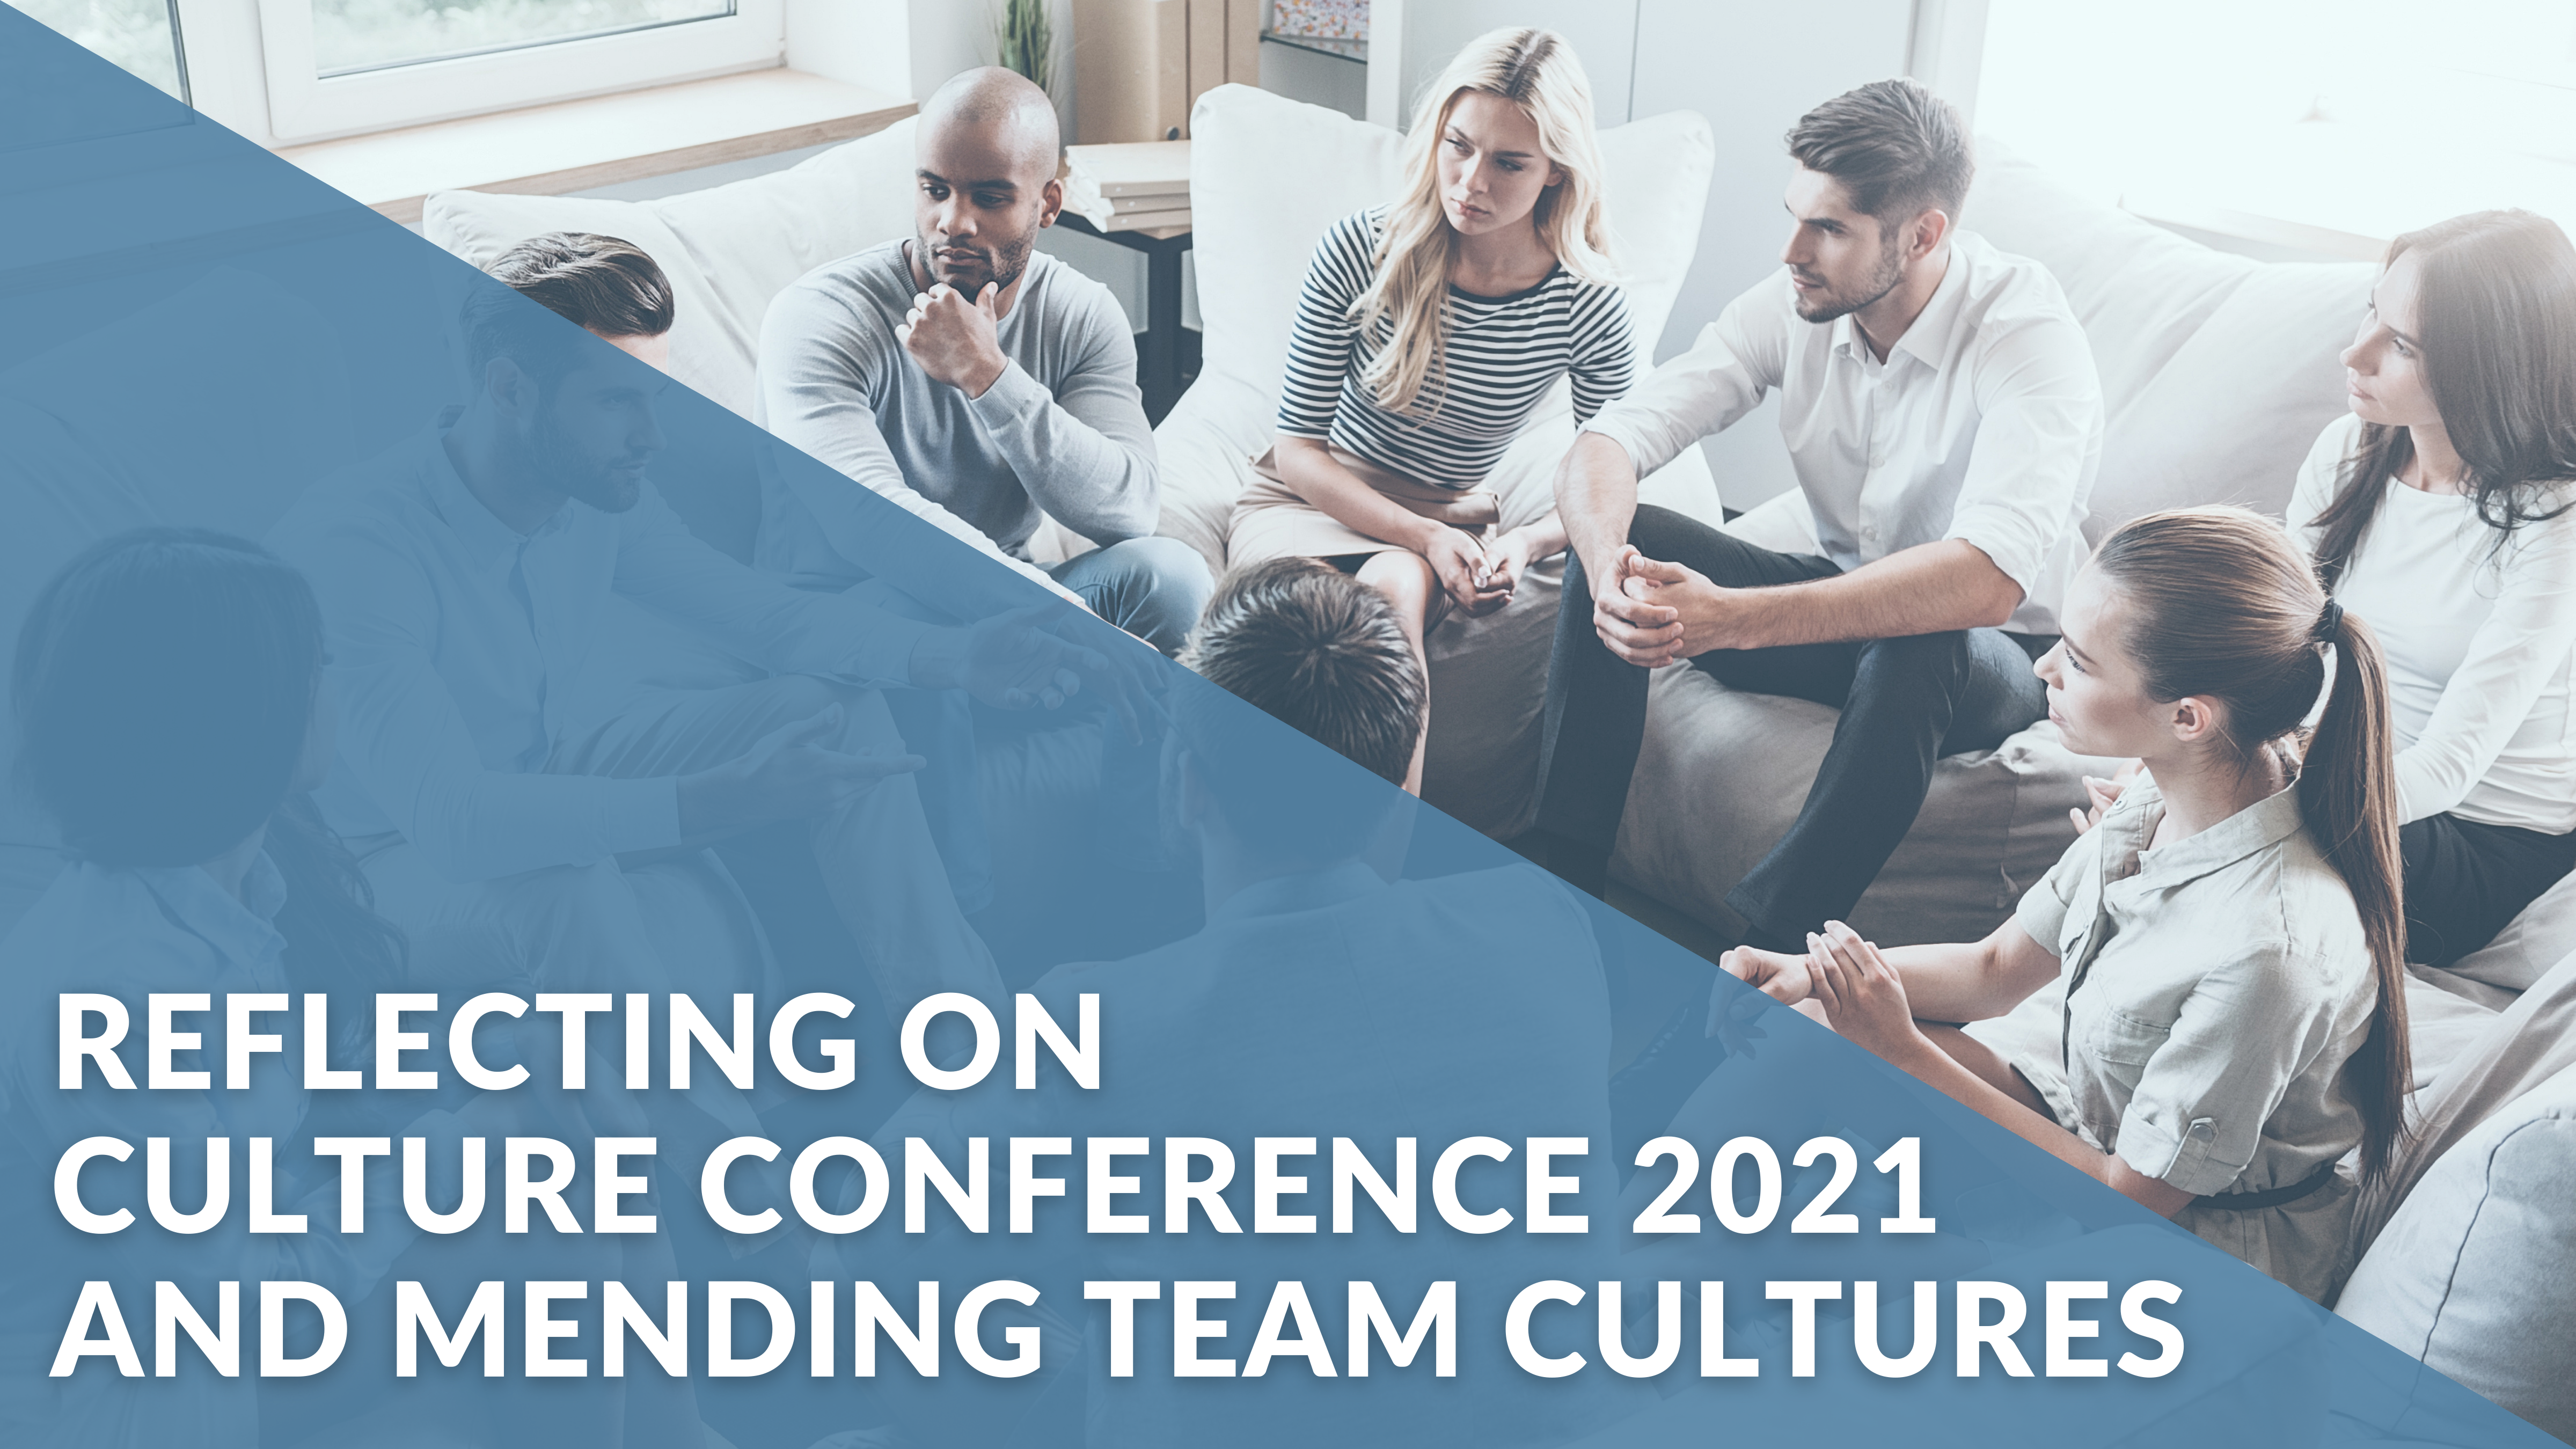 Reflecting on Culture Conference 2021 and Mending Cultures